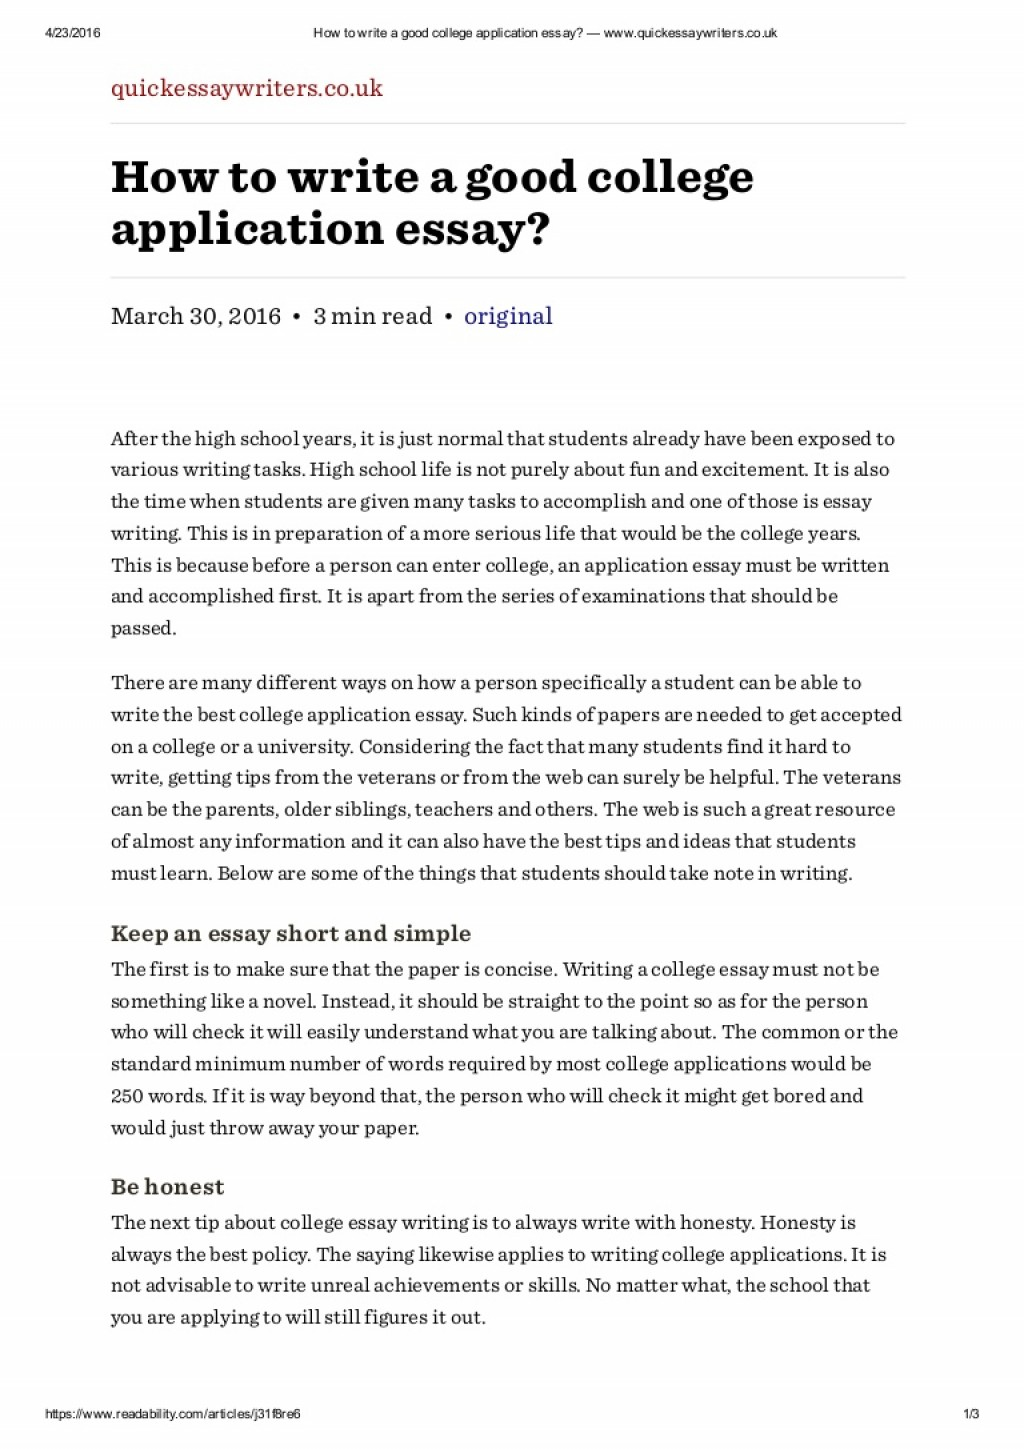 009 Howtowriteagoodcollegeapplicationessaywww Thumbnail Essay Example Writing College Rare A Application How To Write That Stands Out About Yourself Examples Of Uc Essays Large